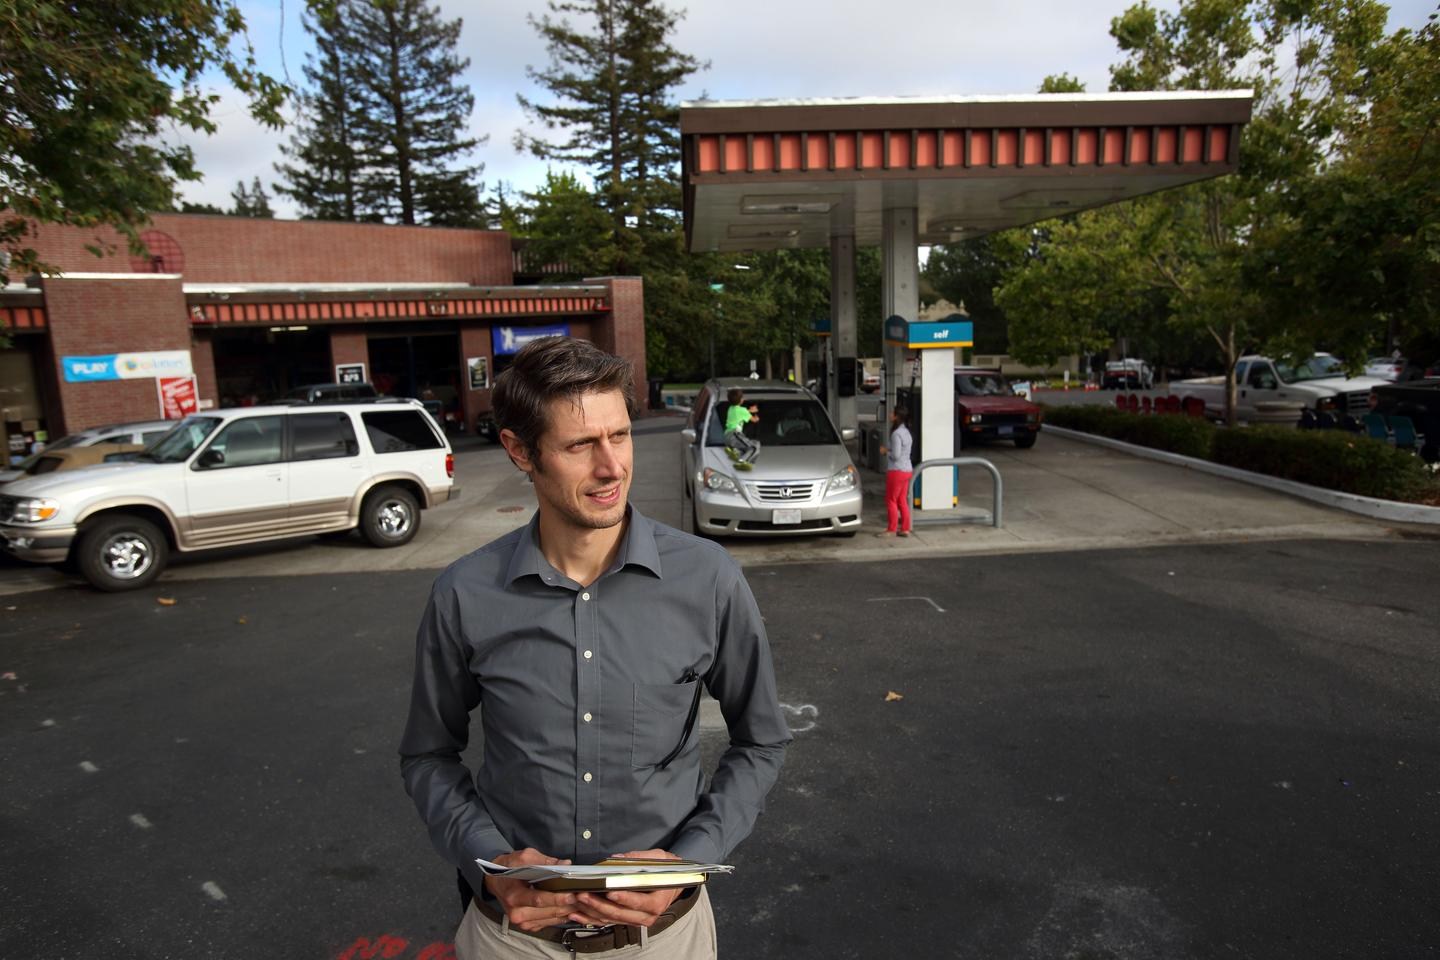 Sandia's Daniel Dedrick visits a station in Oakland, California, as part of a study into hydrogen fuel stations (Photo: Dino Vournas)